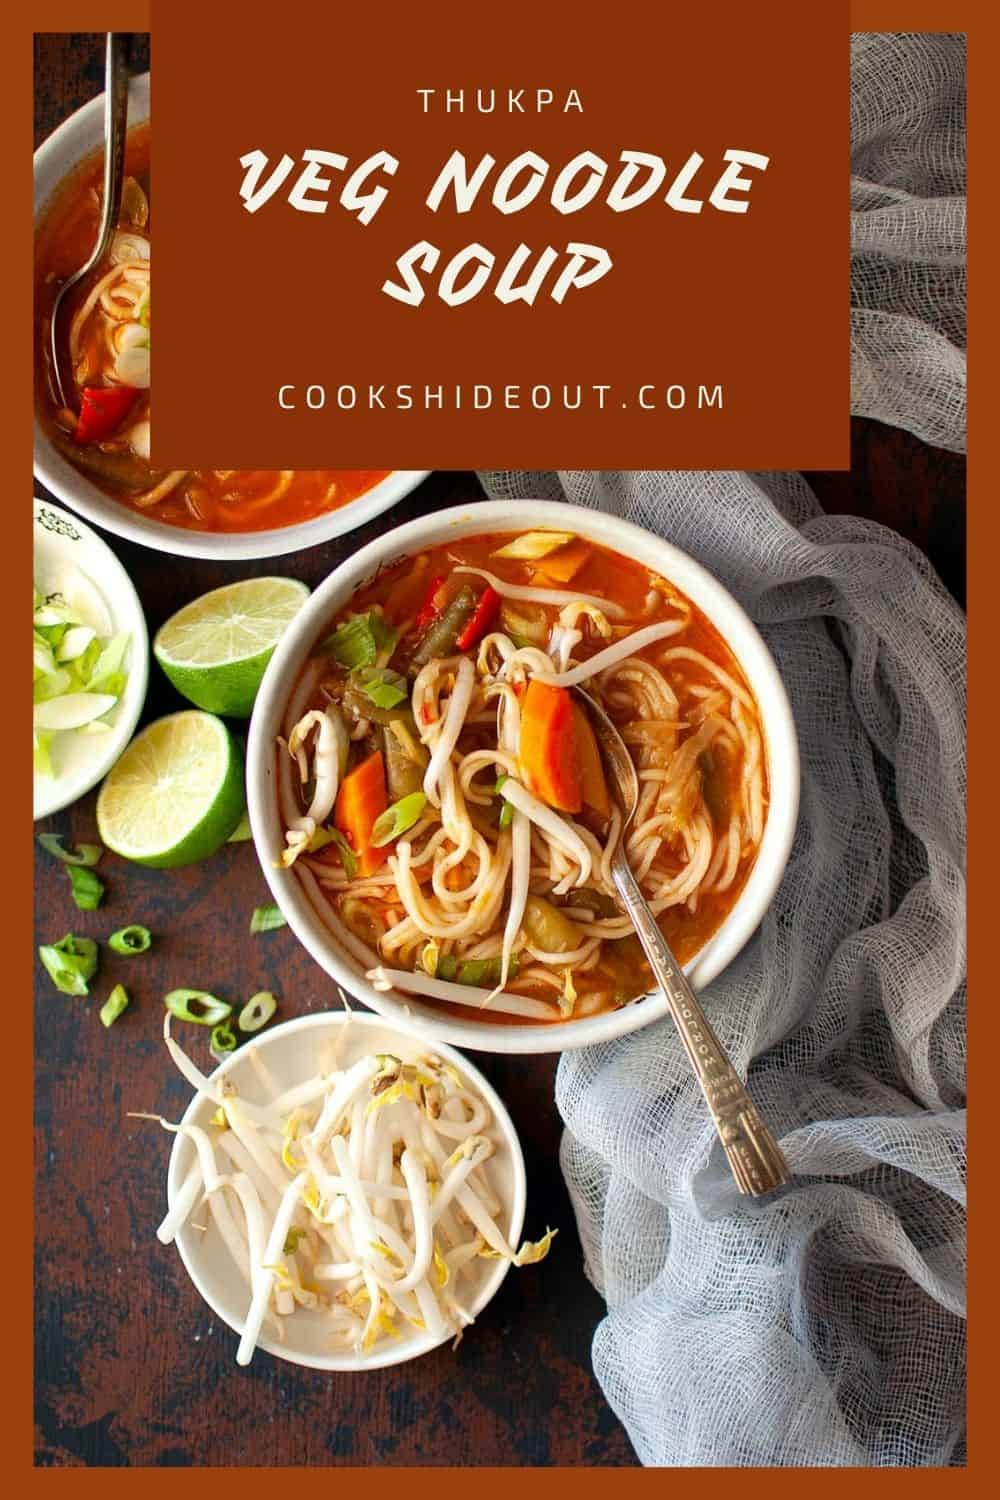 White bowls with Vegetable noodle soup